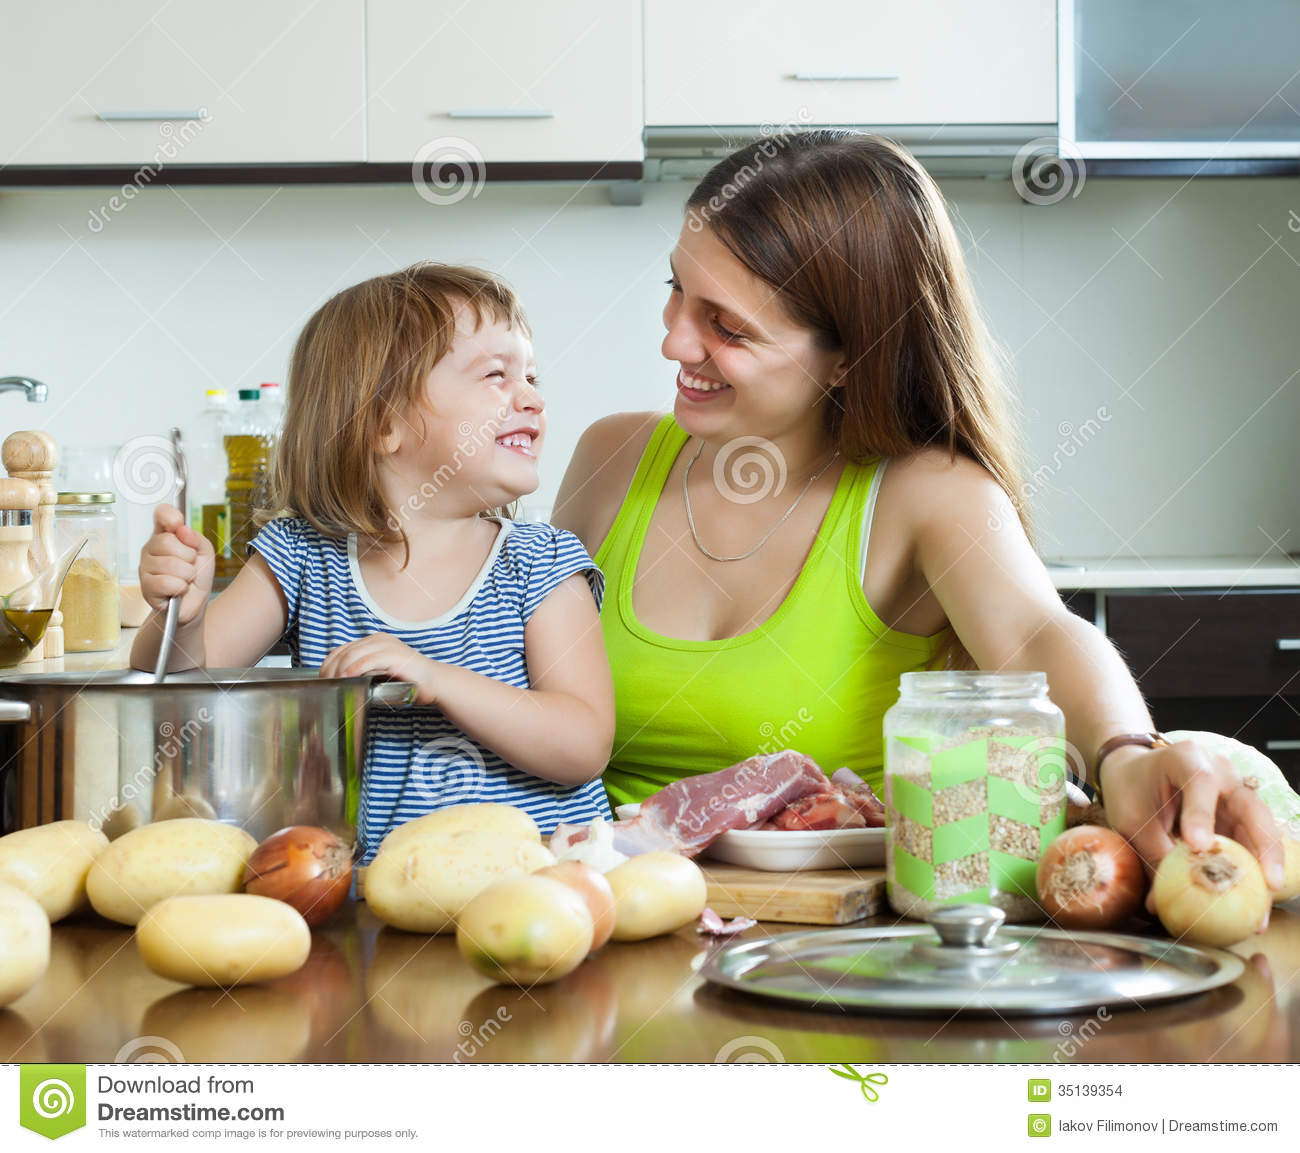 Women Kitchen: Happy Woman With Baby Cooking At Kitchen Stock Images